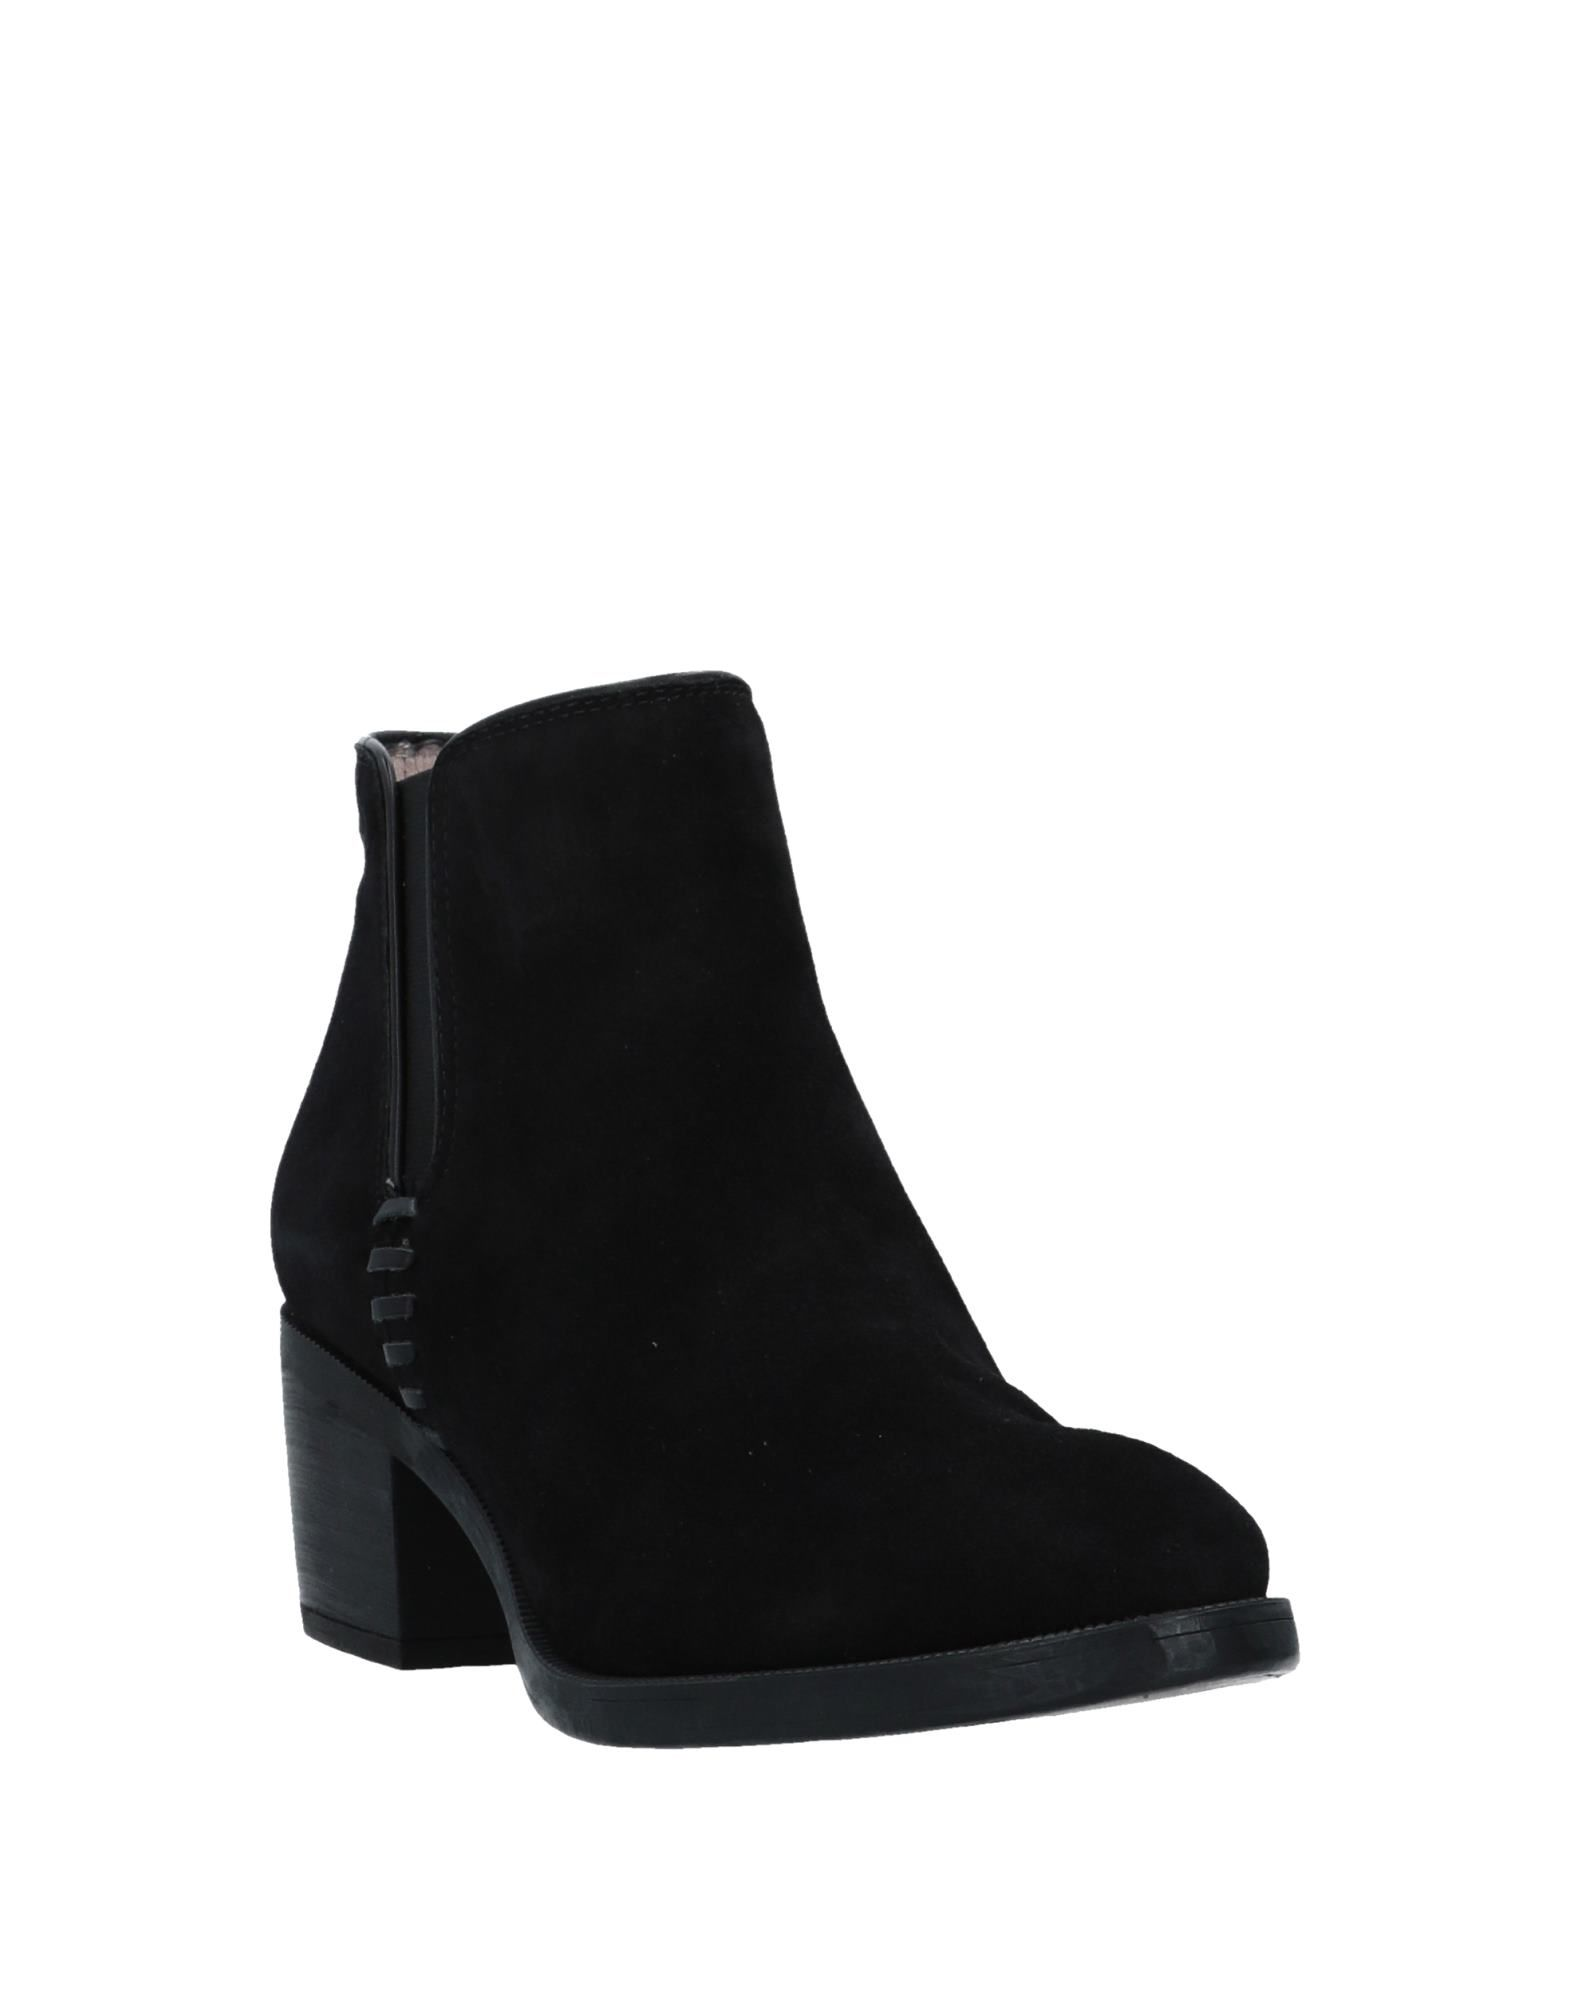 Unisa Ankle Boot - Women Unisa  Ankle Boots online on  Unisa United Kingdom - 11519591QR 8e5ac4